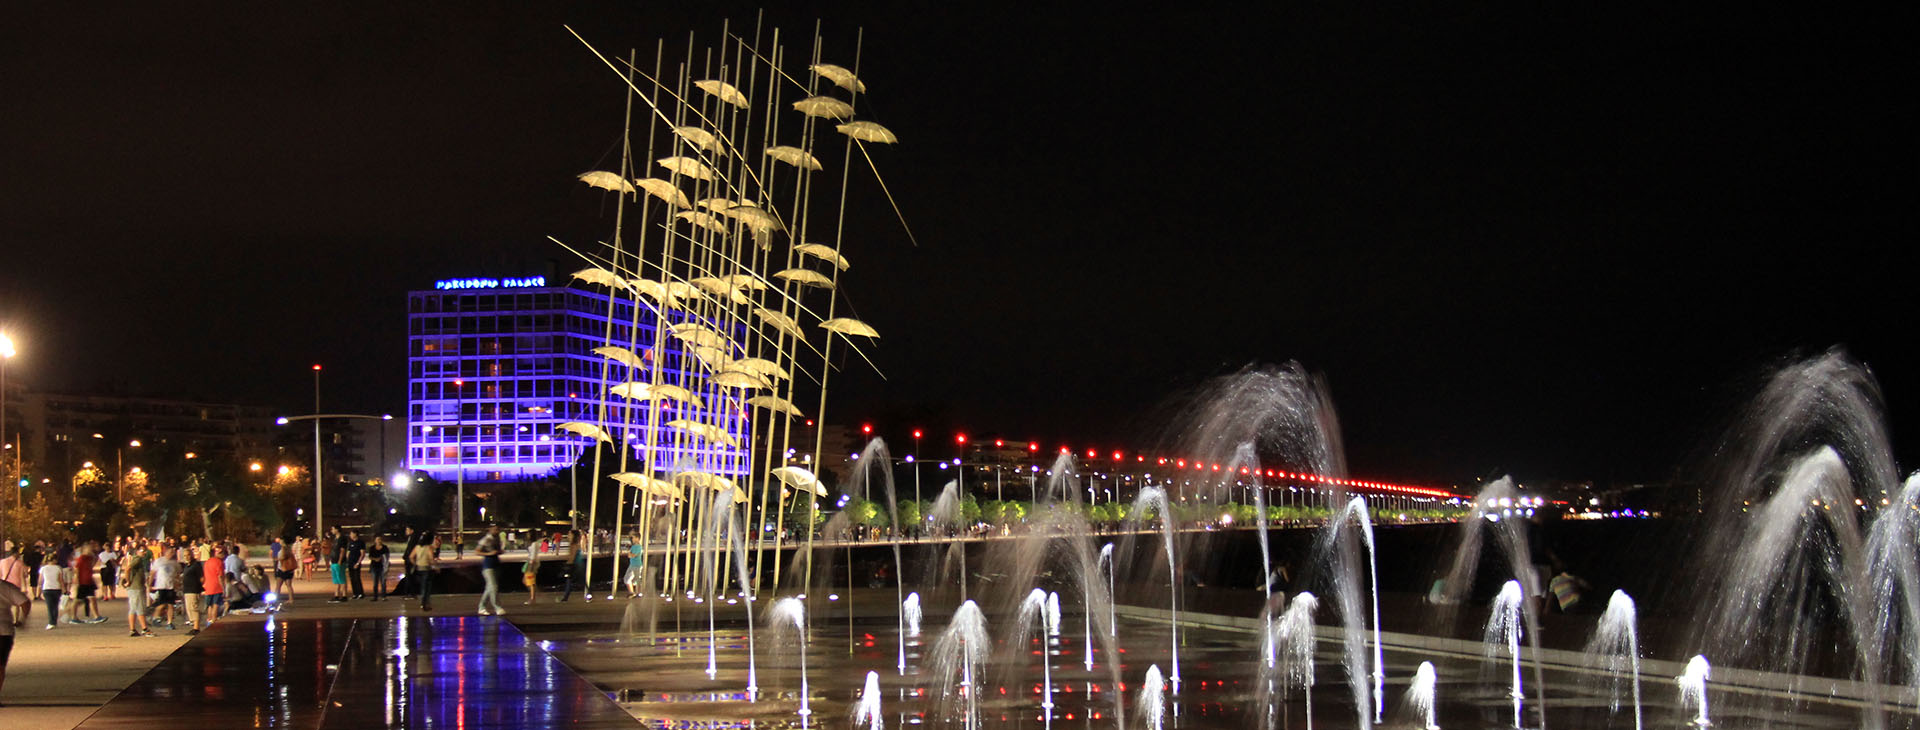 """Umbrellas"" modern art statue by night, seafront of Thessaloniki City"